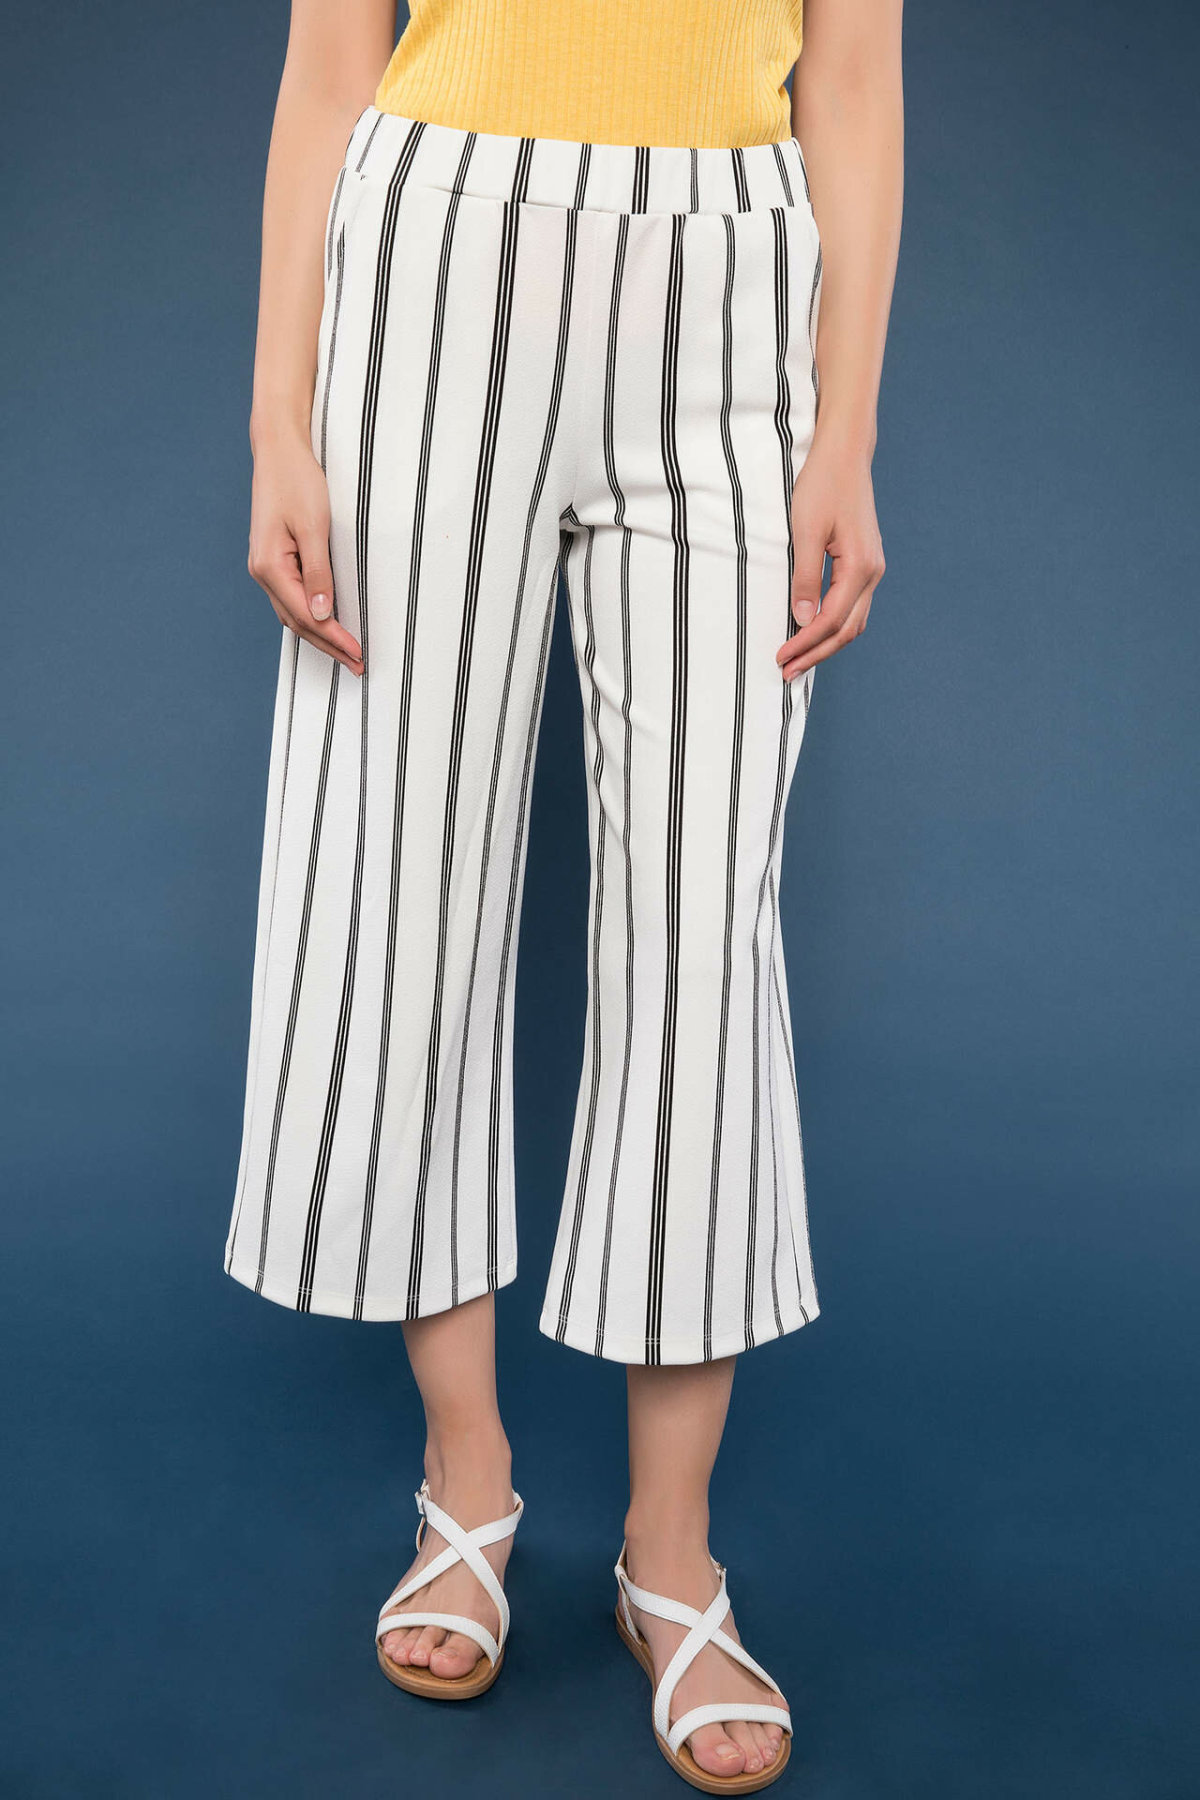 DeFacto Woman Summer Striped Wide Leg Pants Women Casual Loose Ninth Pants Women Breathbale Bottoms Trousers-J7935AZ18HS